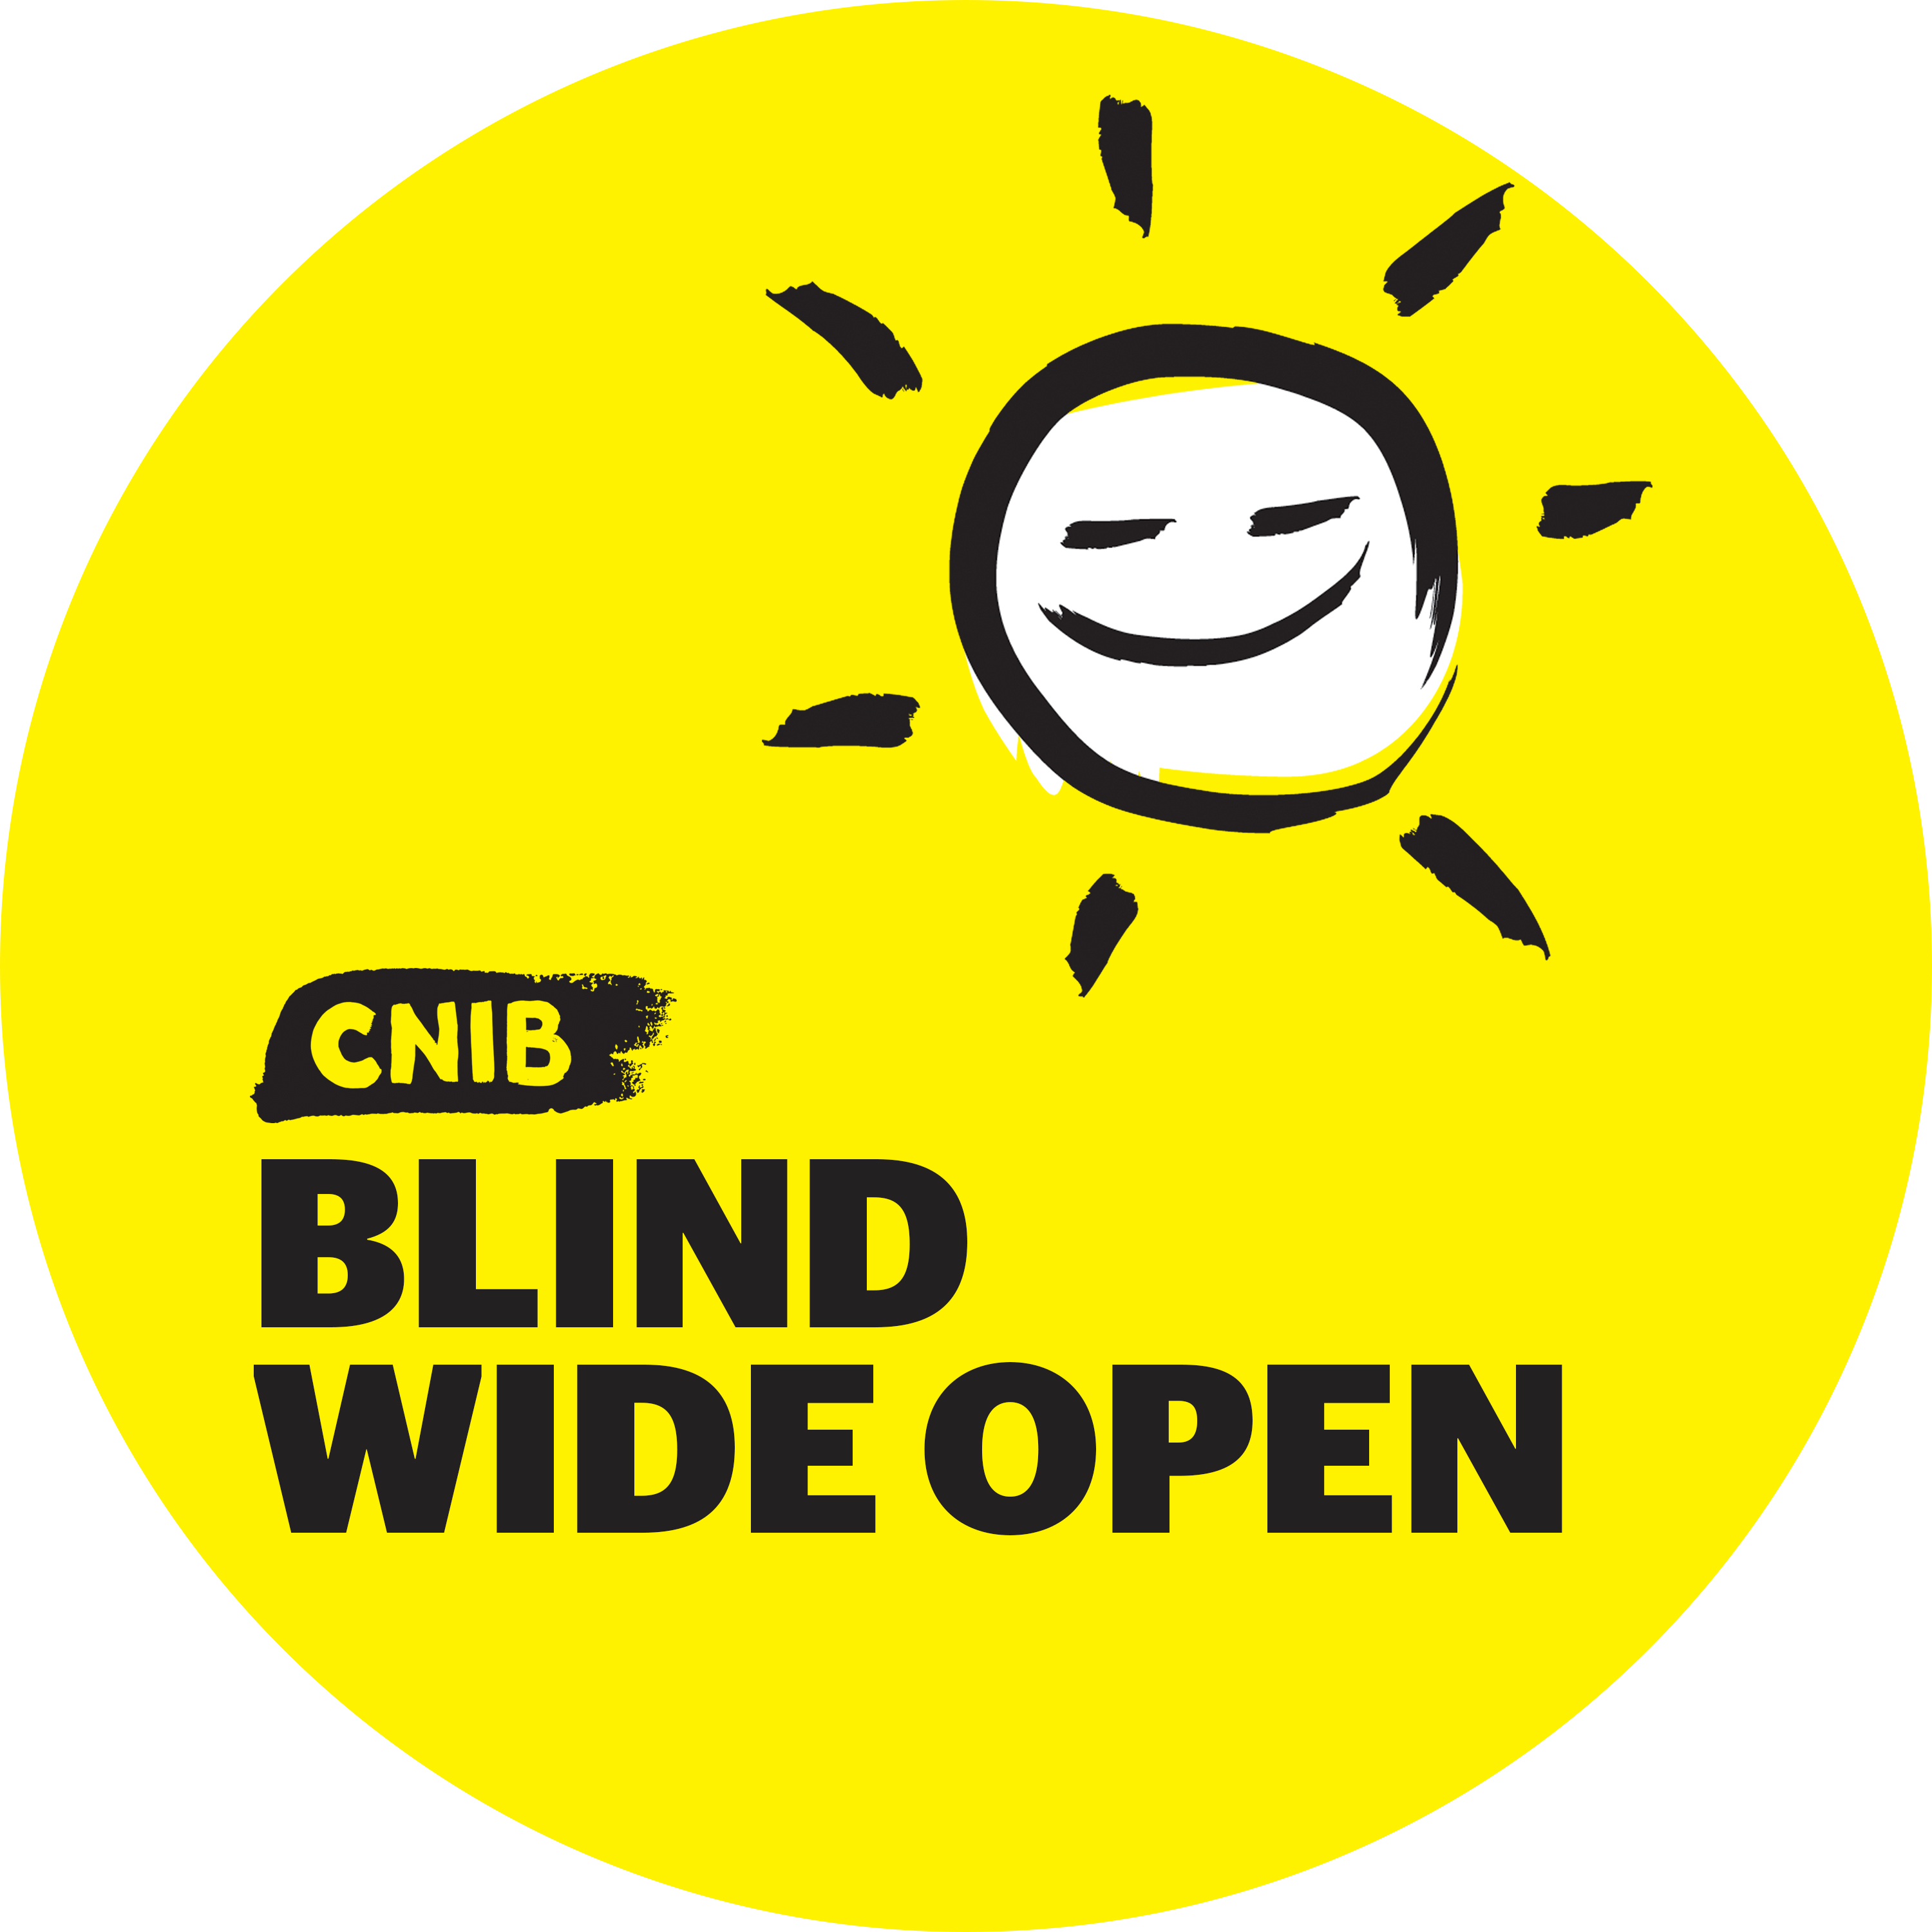 CNIB Blind Wide Open with sun icon.